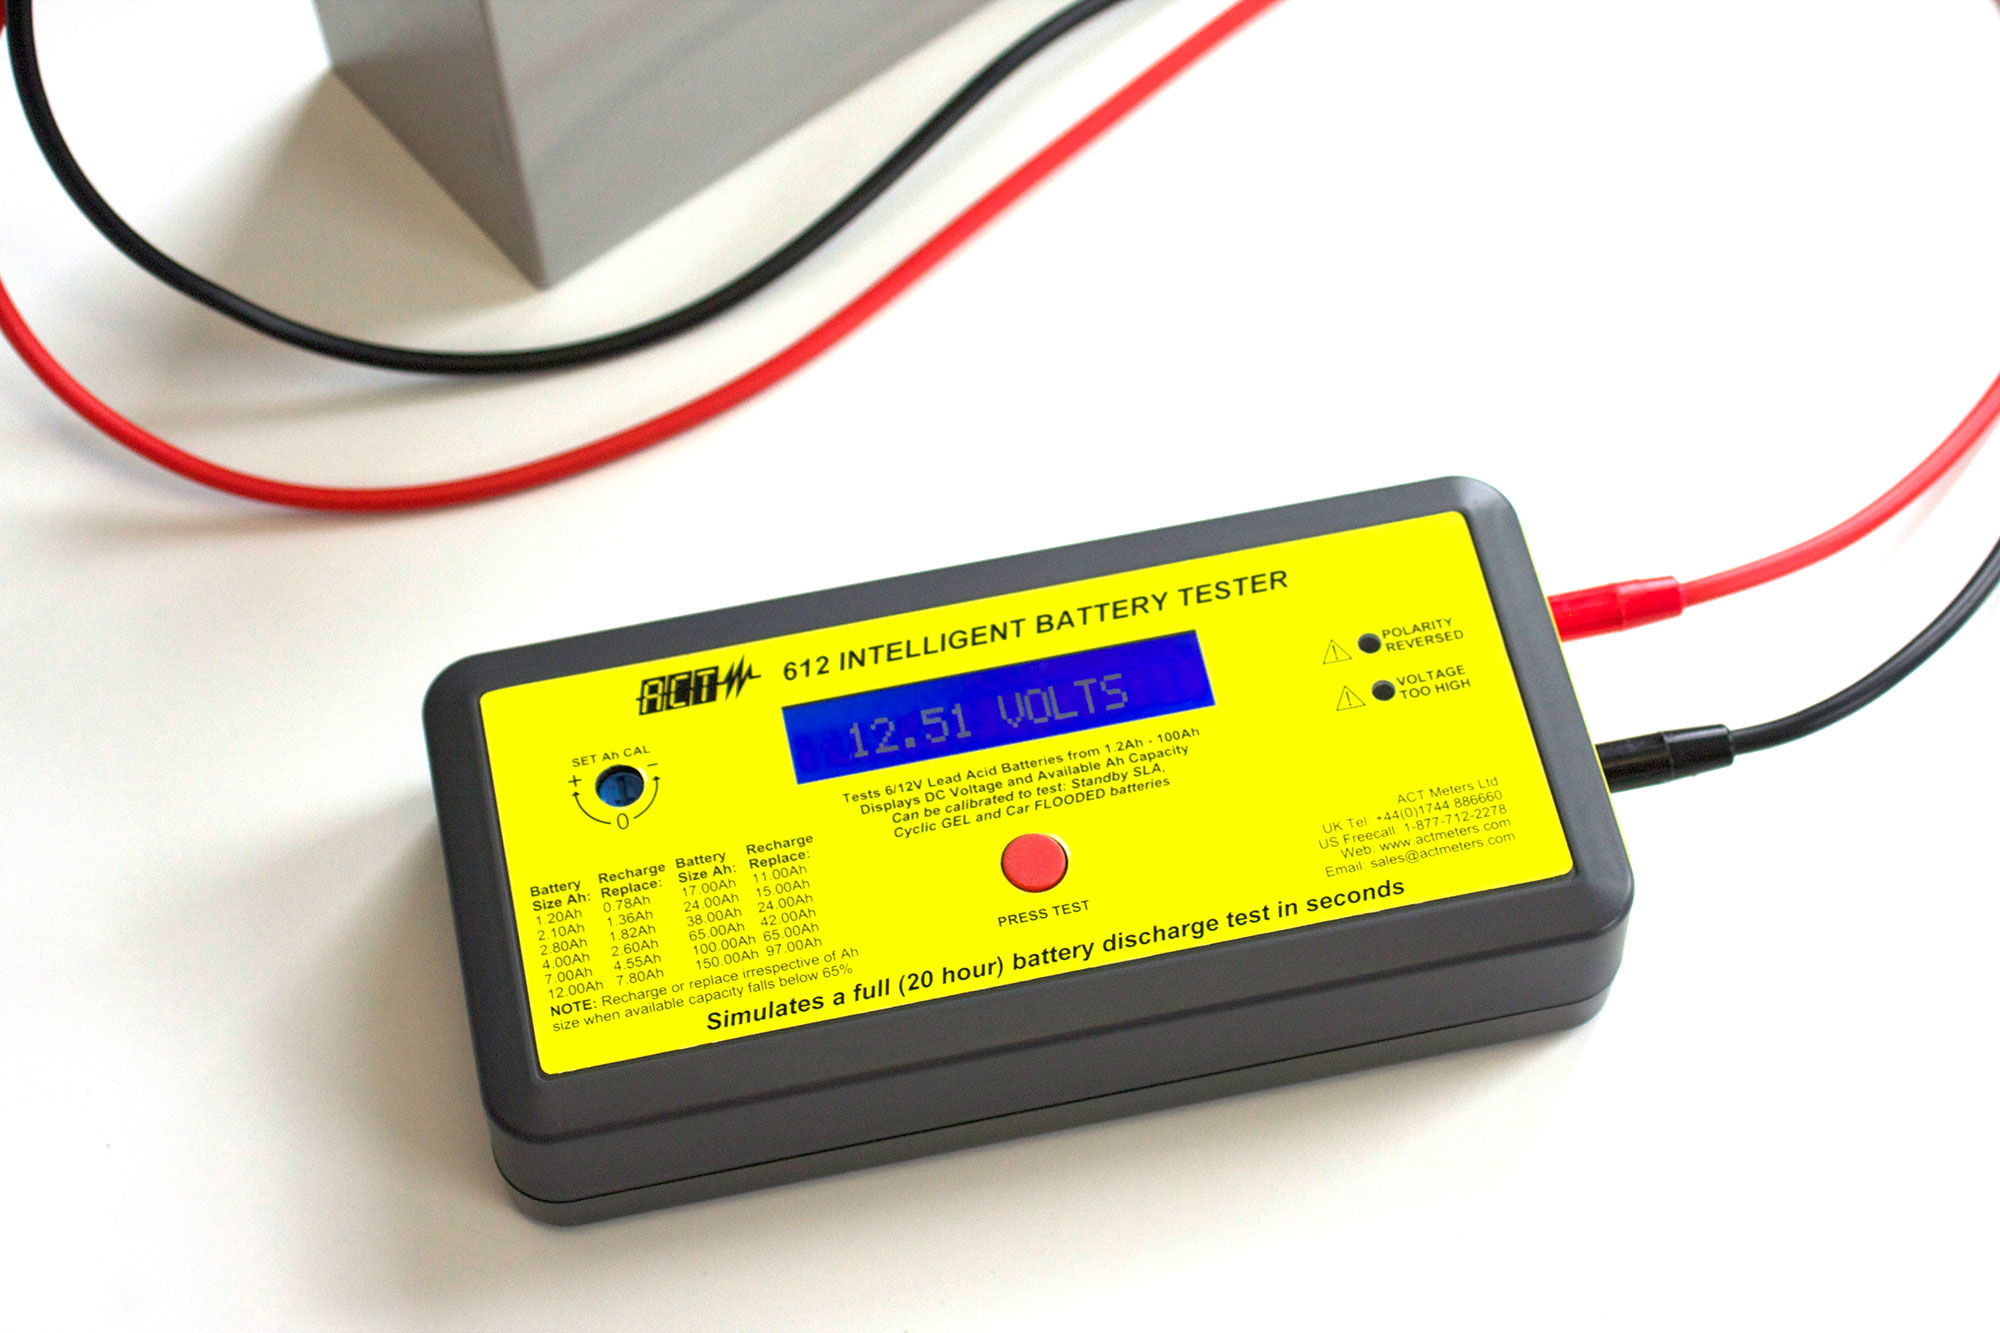 Act 612 6v 12v Lead Acid Intelligent Battery Tester Meters Uk Short Circuit Loading Take Seconds To Receive Accurate Ampere Hour Ah Capacity Results Of The Most Common Types